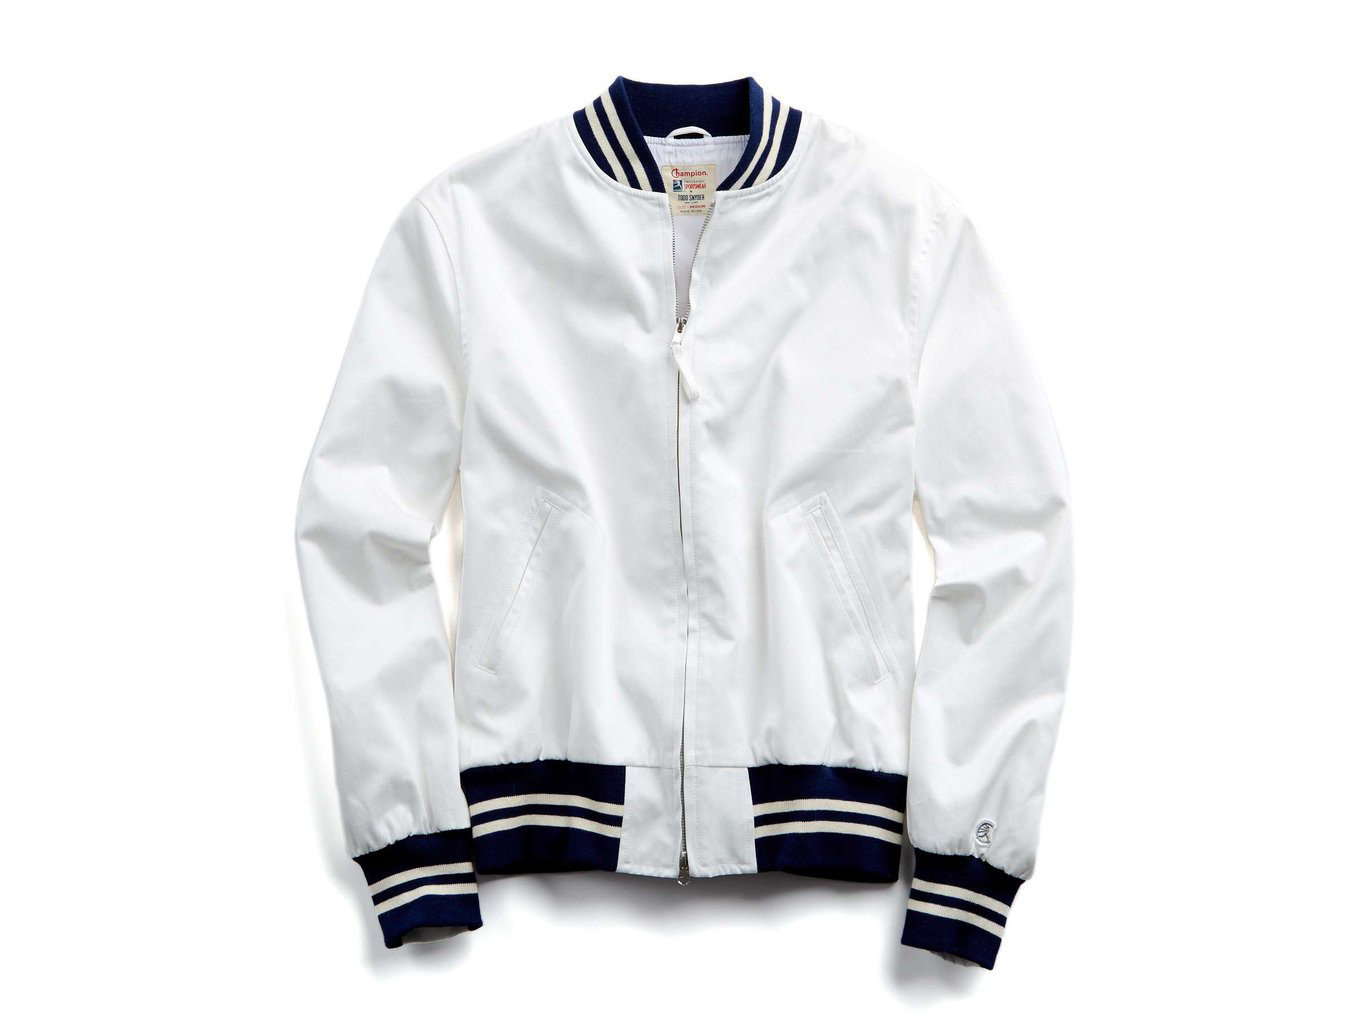 white jacket sleeve outerwear collar product hood sports uniform